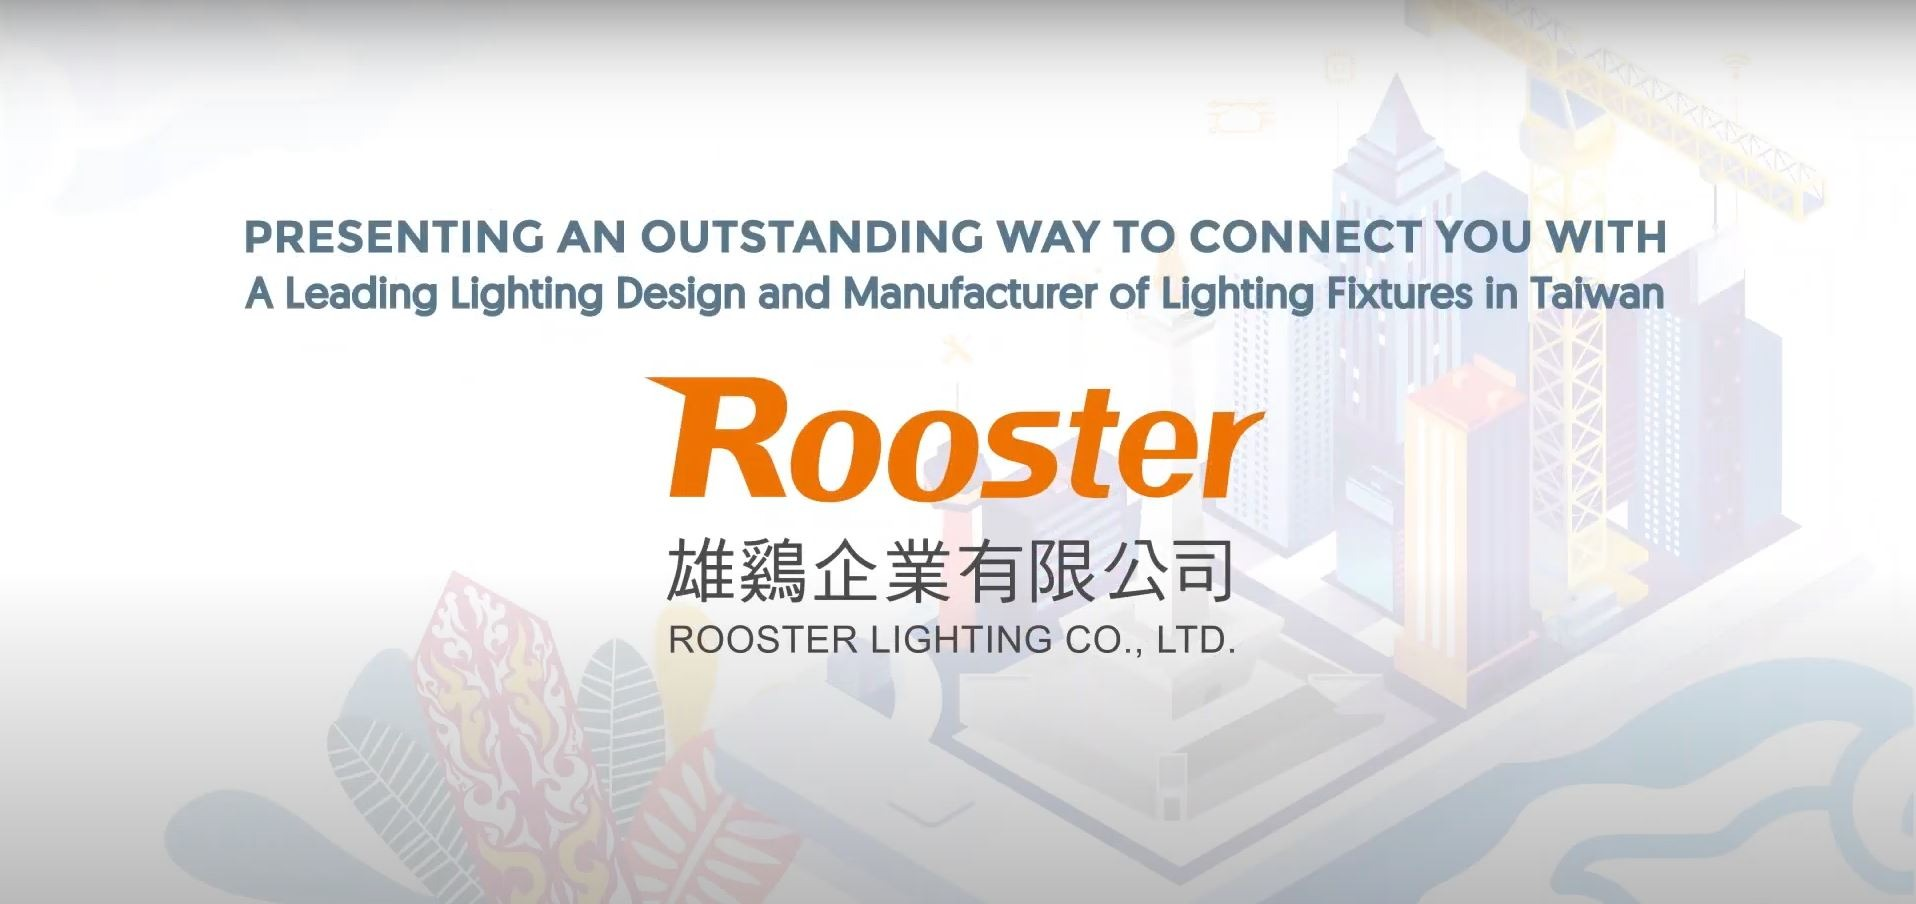 Rooster Lighting